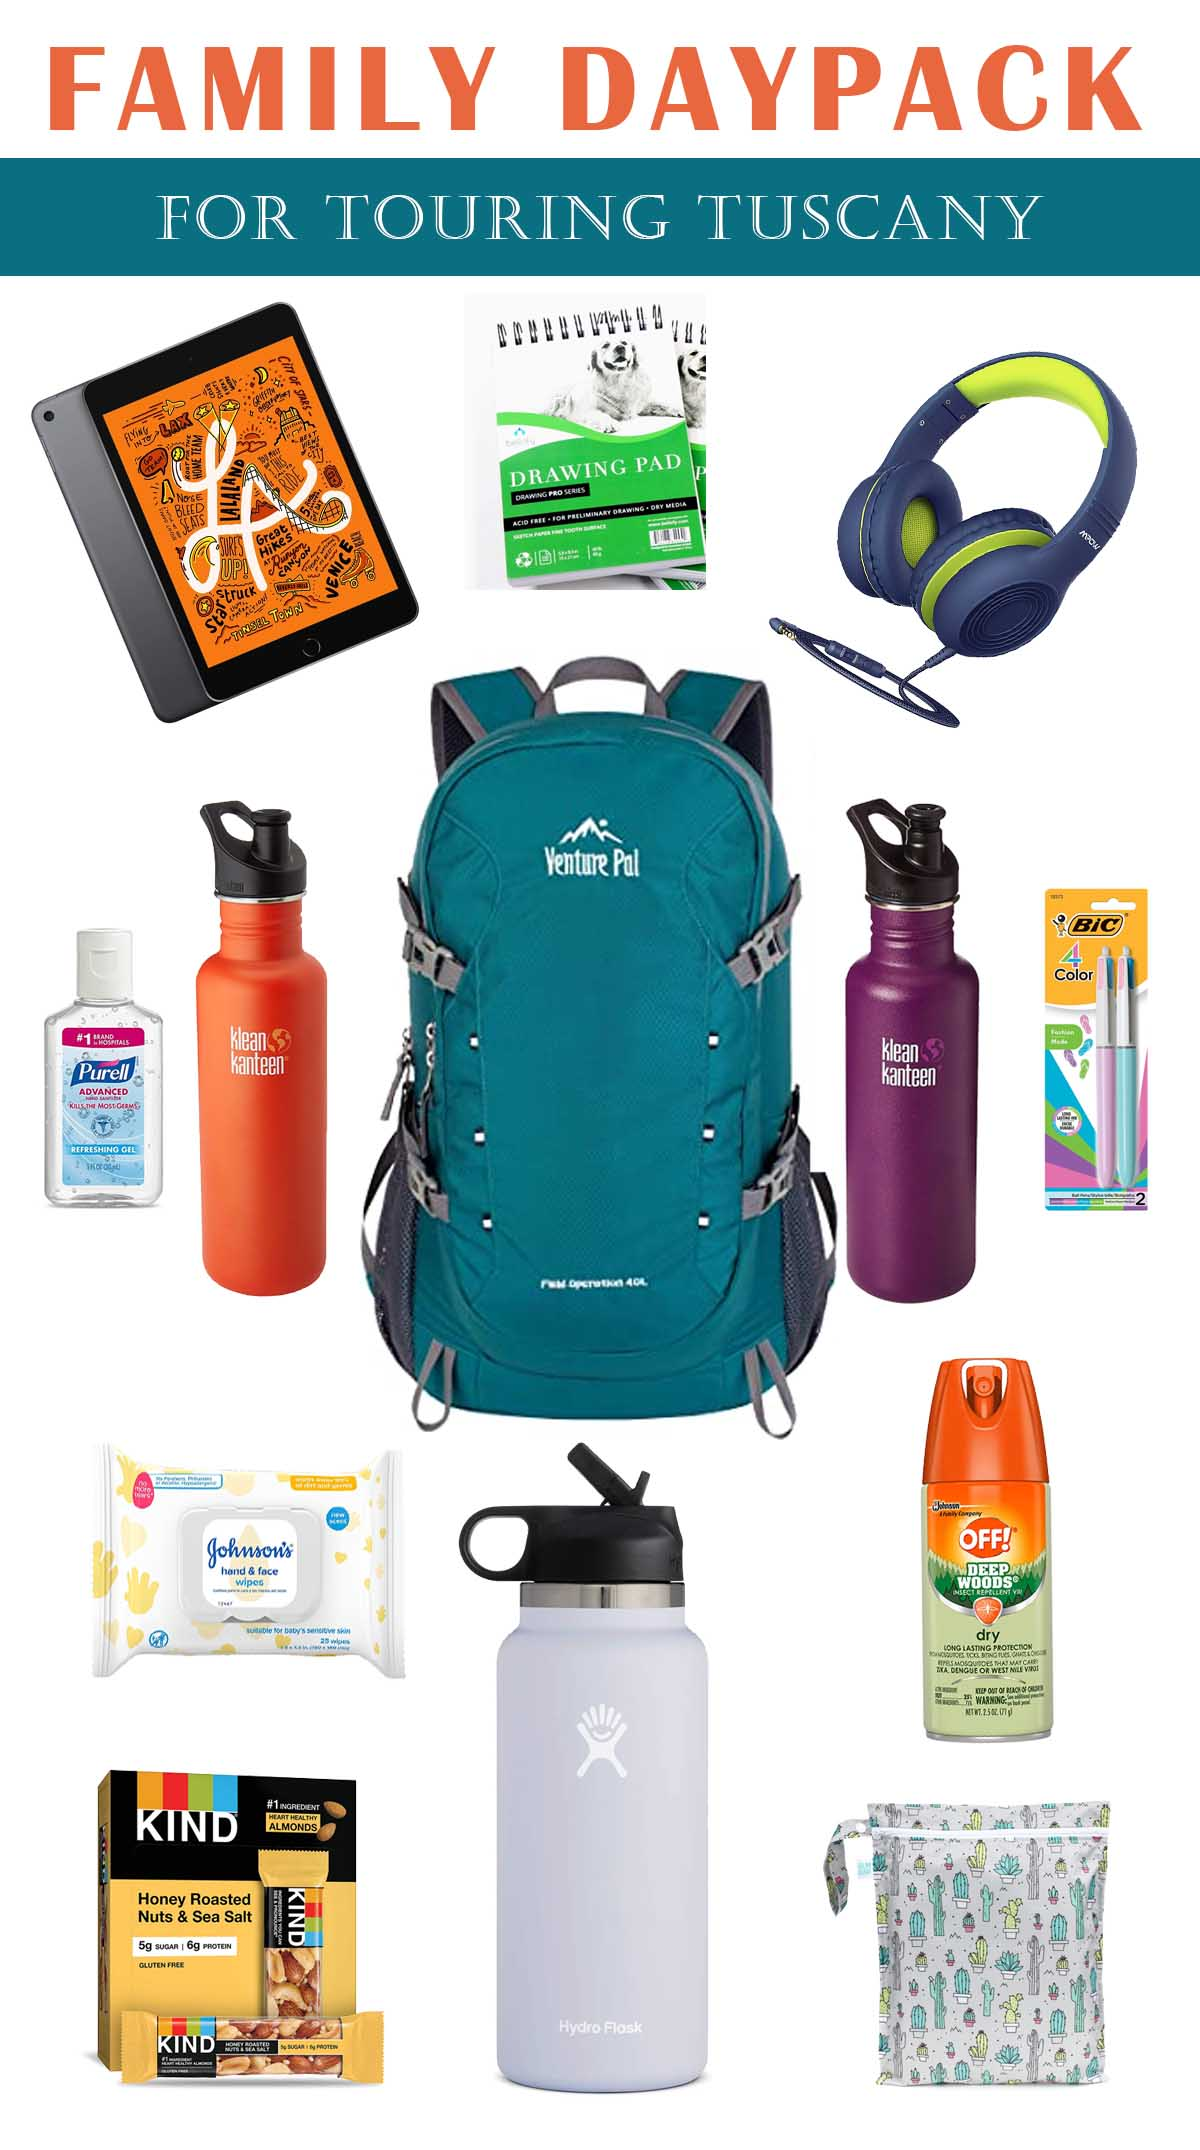 family daypack for tourin tuscany